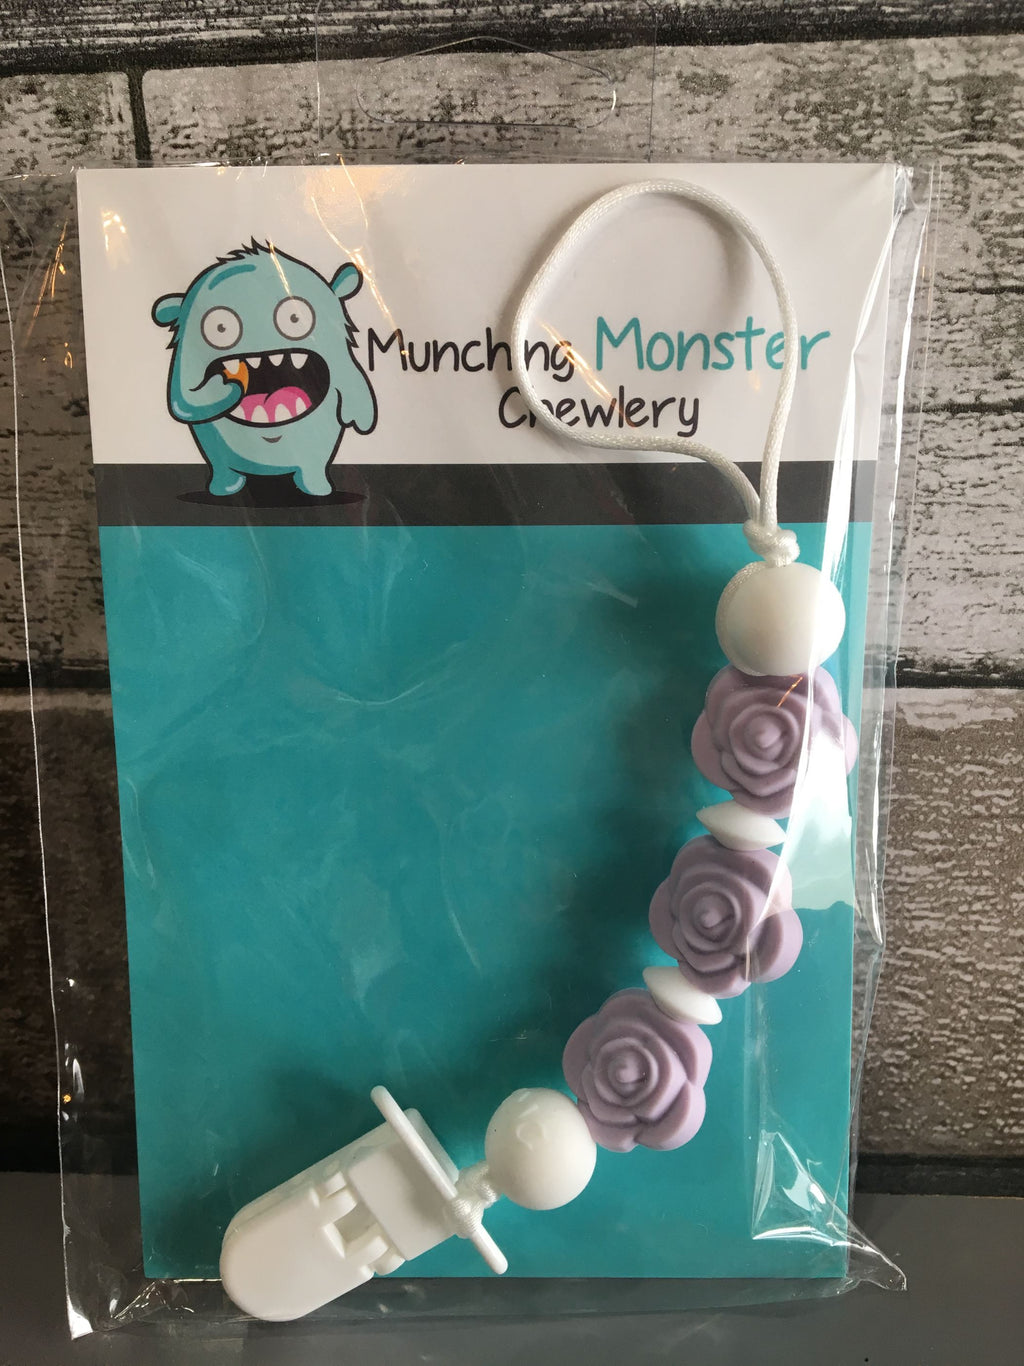 Munching Monster Chewlery - Soother Clips